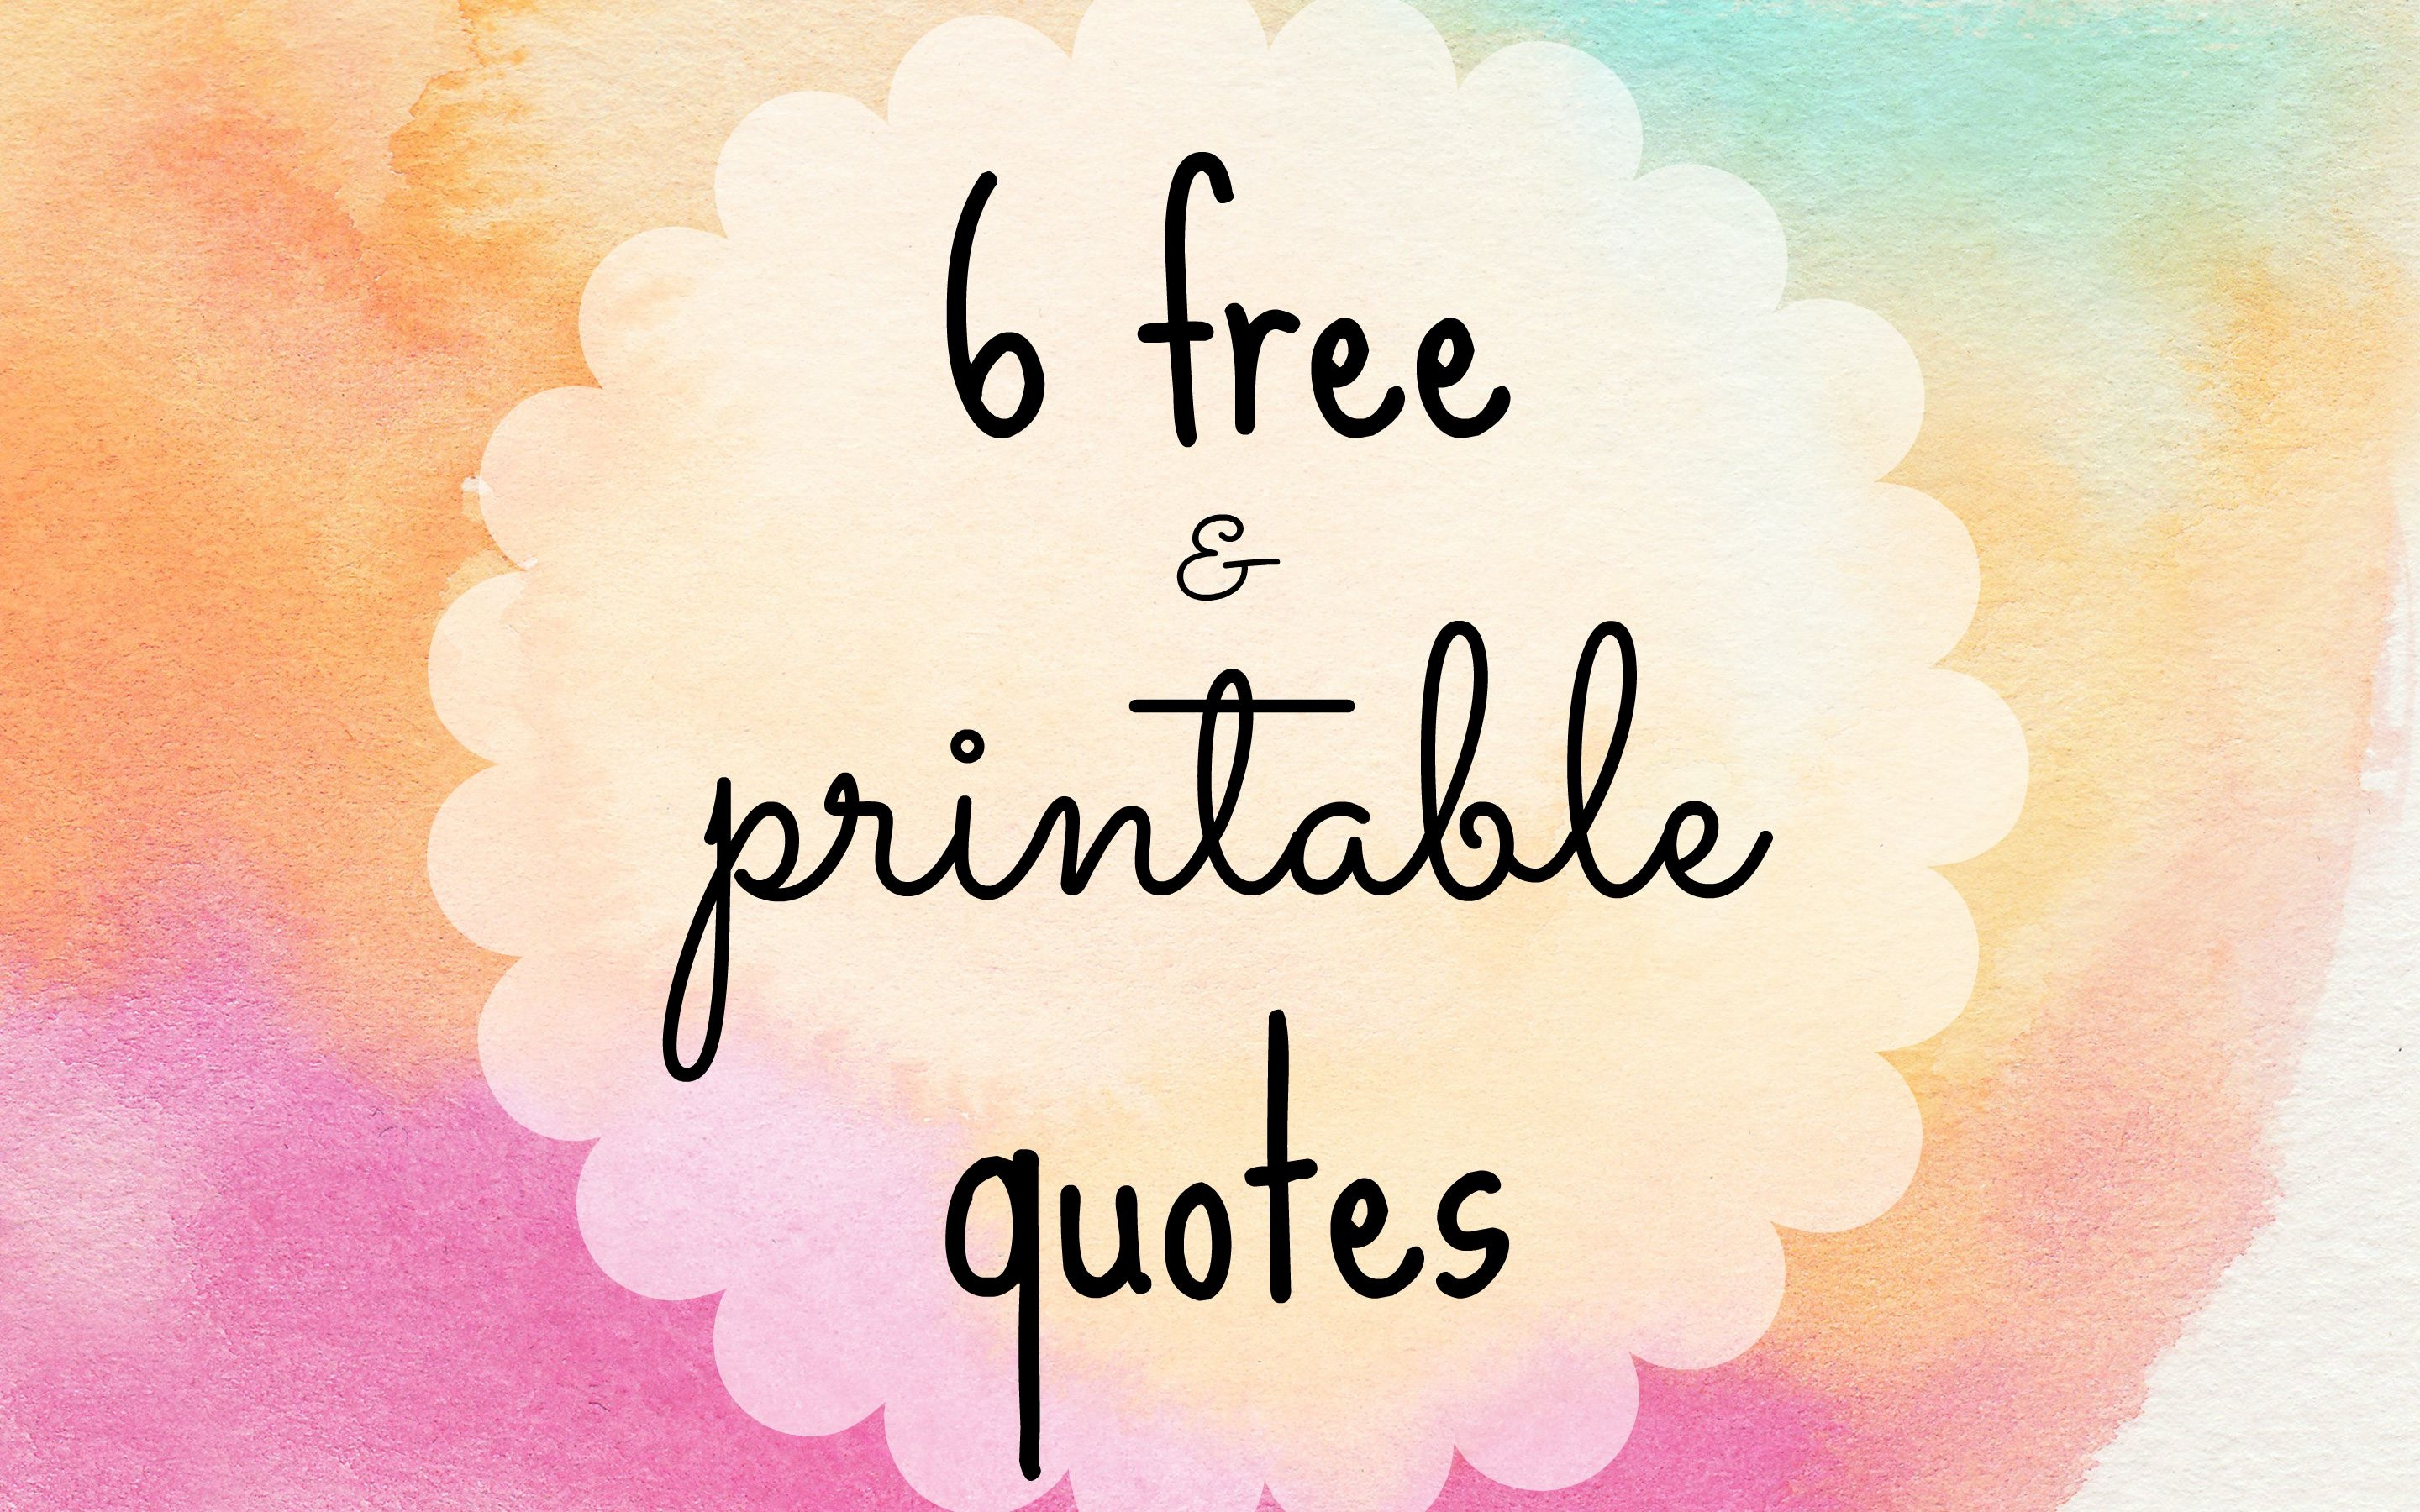 6 Free Printable Quotes To Dress Your Desk - Free Printable Quotes And Sayings